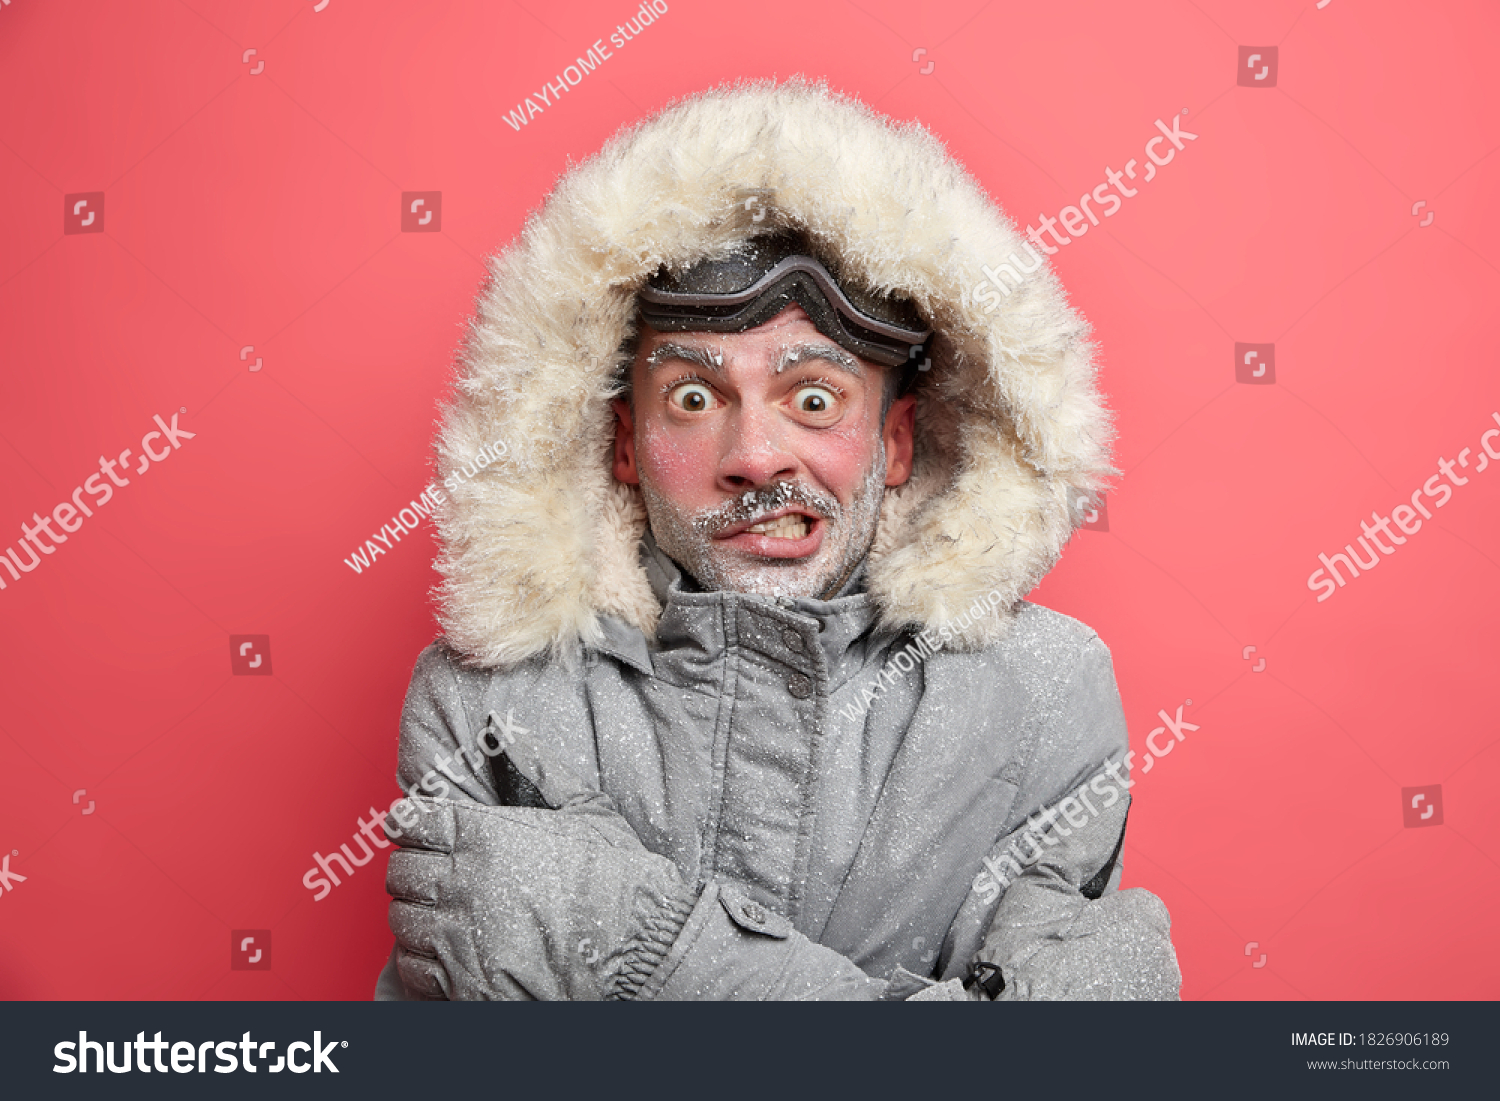 Frozen man trembles from cold has red face covered by ice frosted beard wears jacket with hood needs to warm during winter expedition poses over coral background. Cold weather low temperature #1826906189